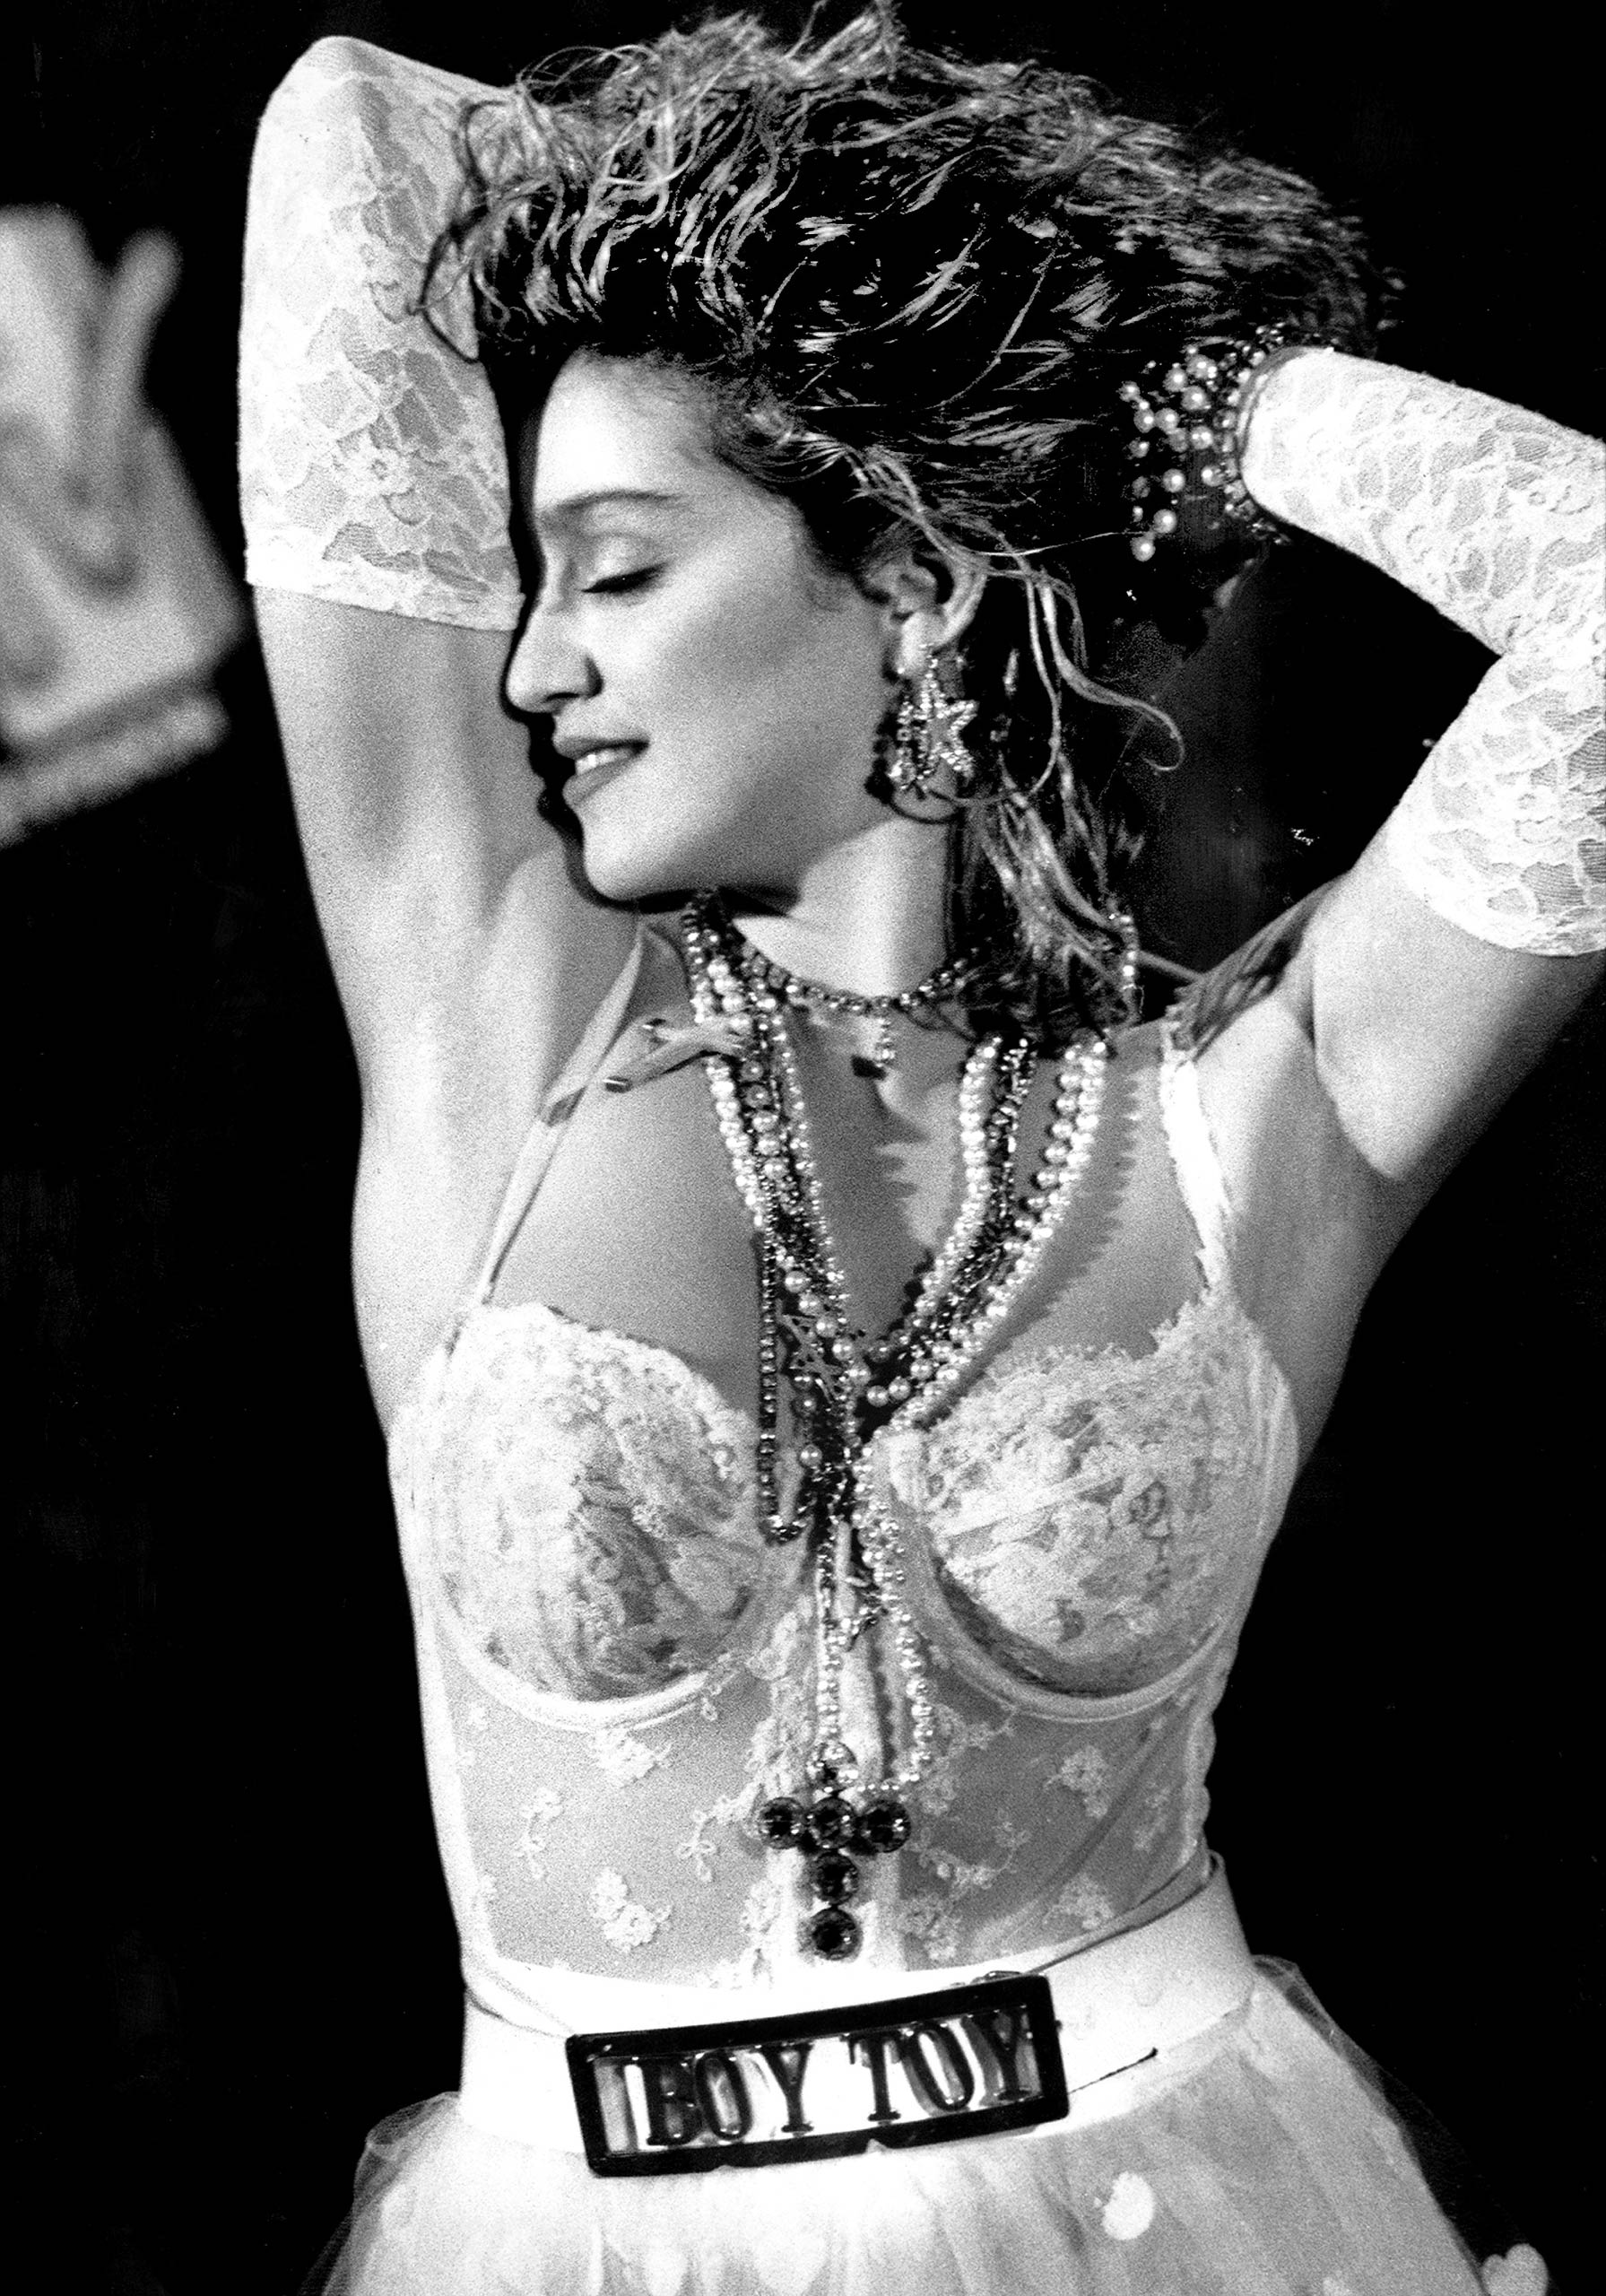 Madonna performs at the MTV Video Awards in 1984.